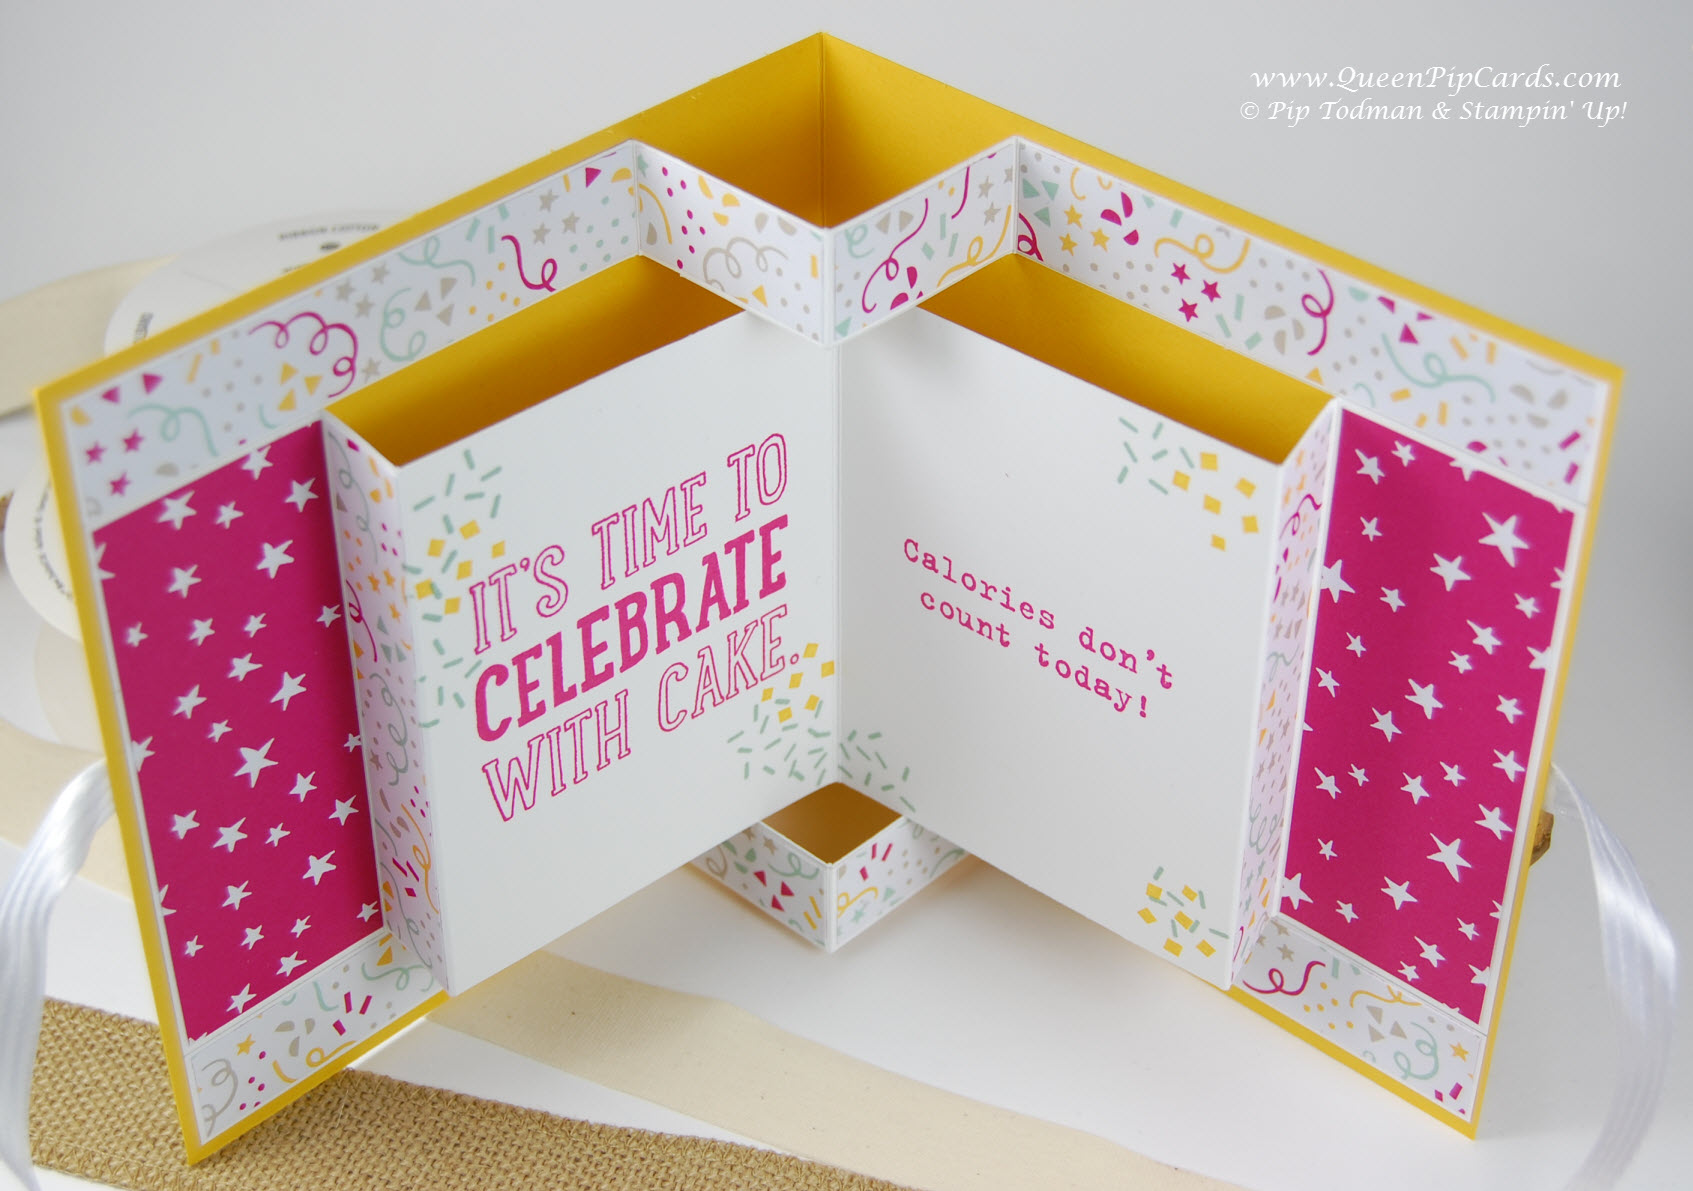 Check out my Stampin' Up shop for some wonderful, new and exciting products.